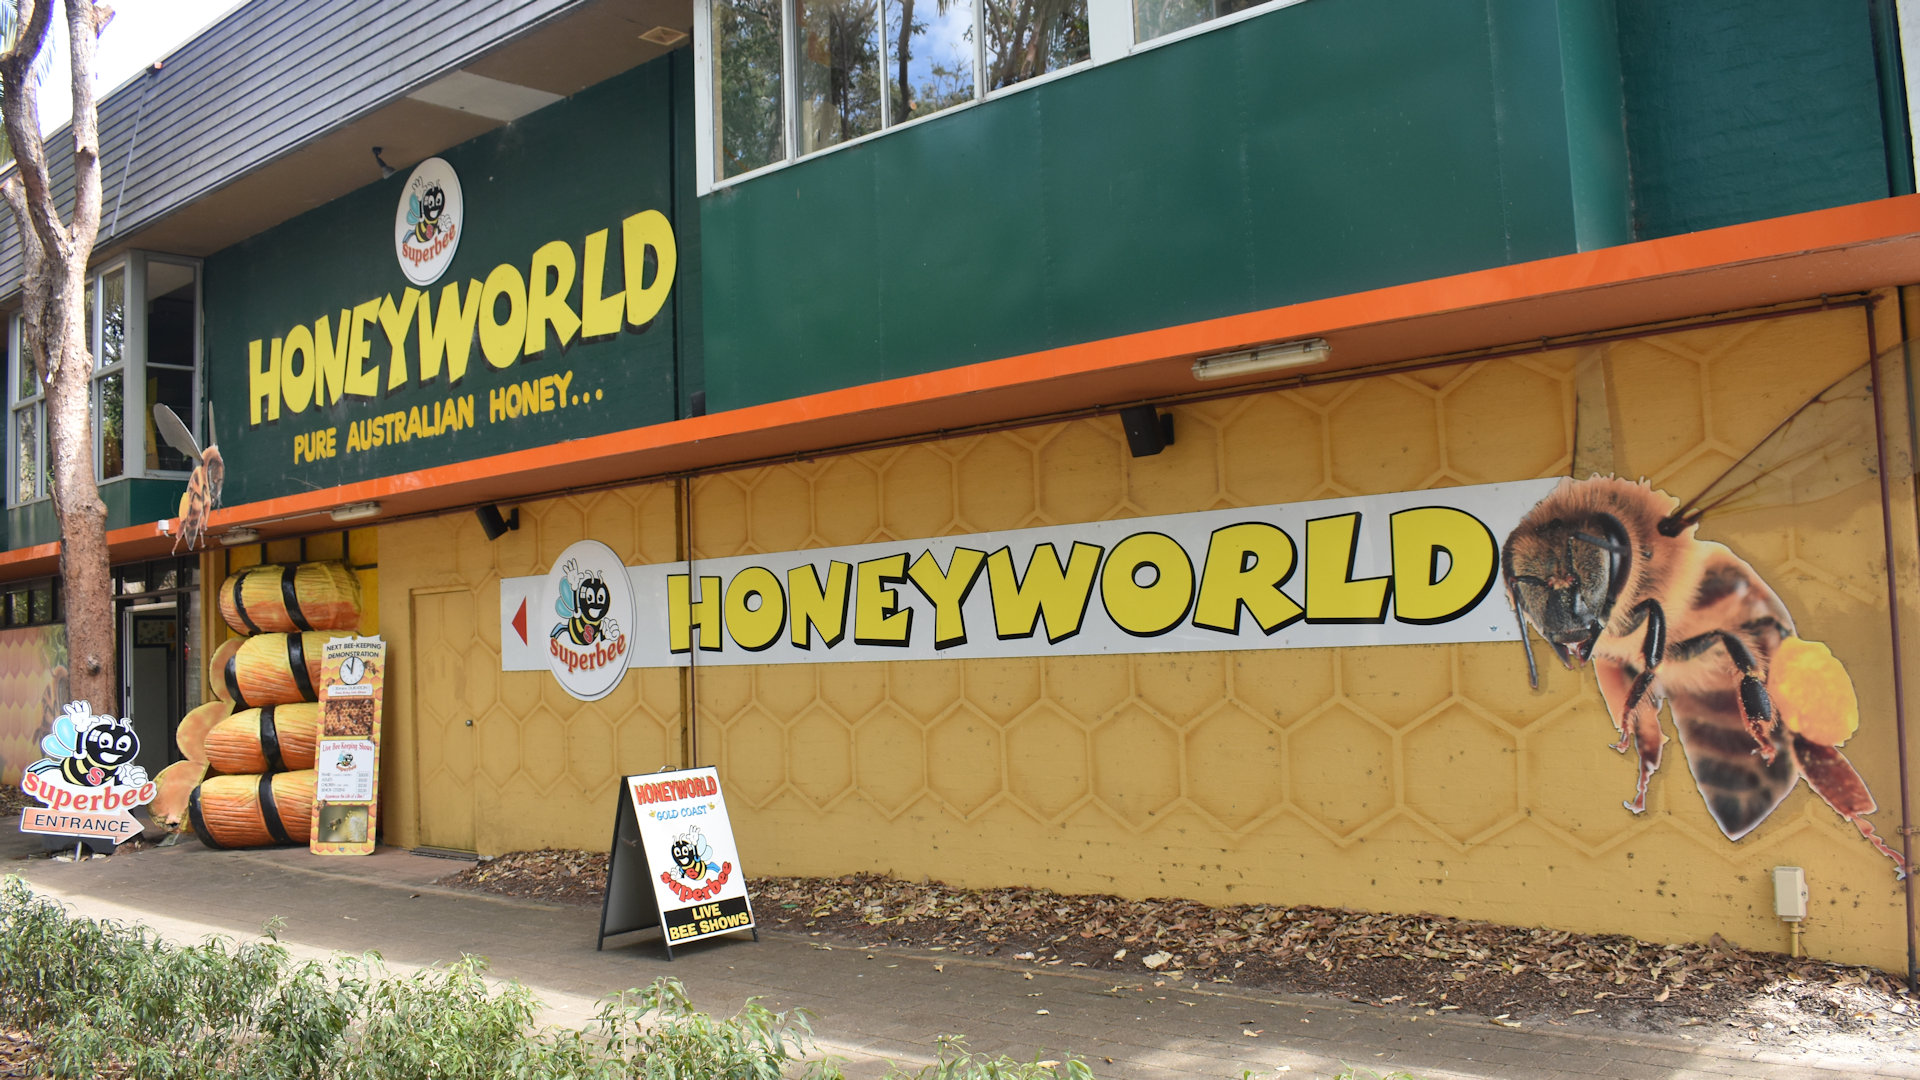 Front of the Superbee Honeyworld attraction in Currumbin Gold Coast, with the Big Beehive entrance